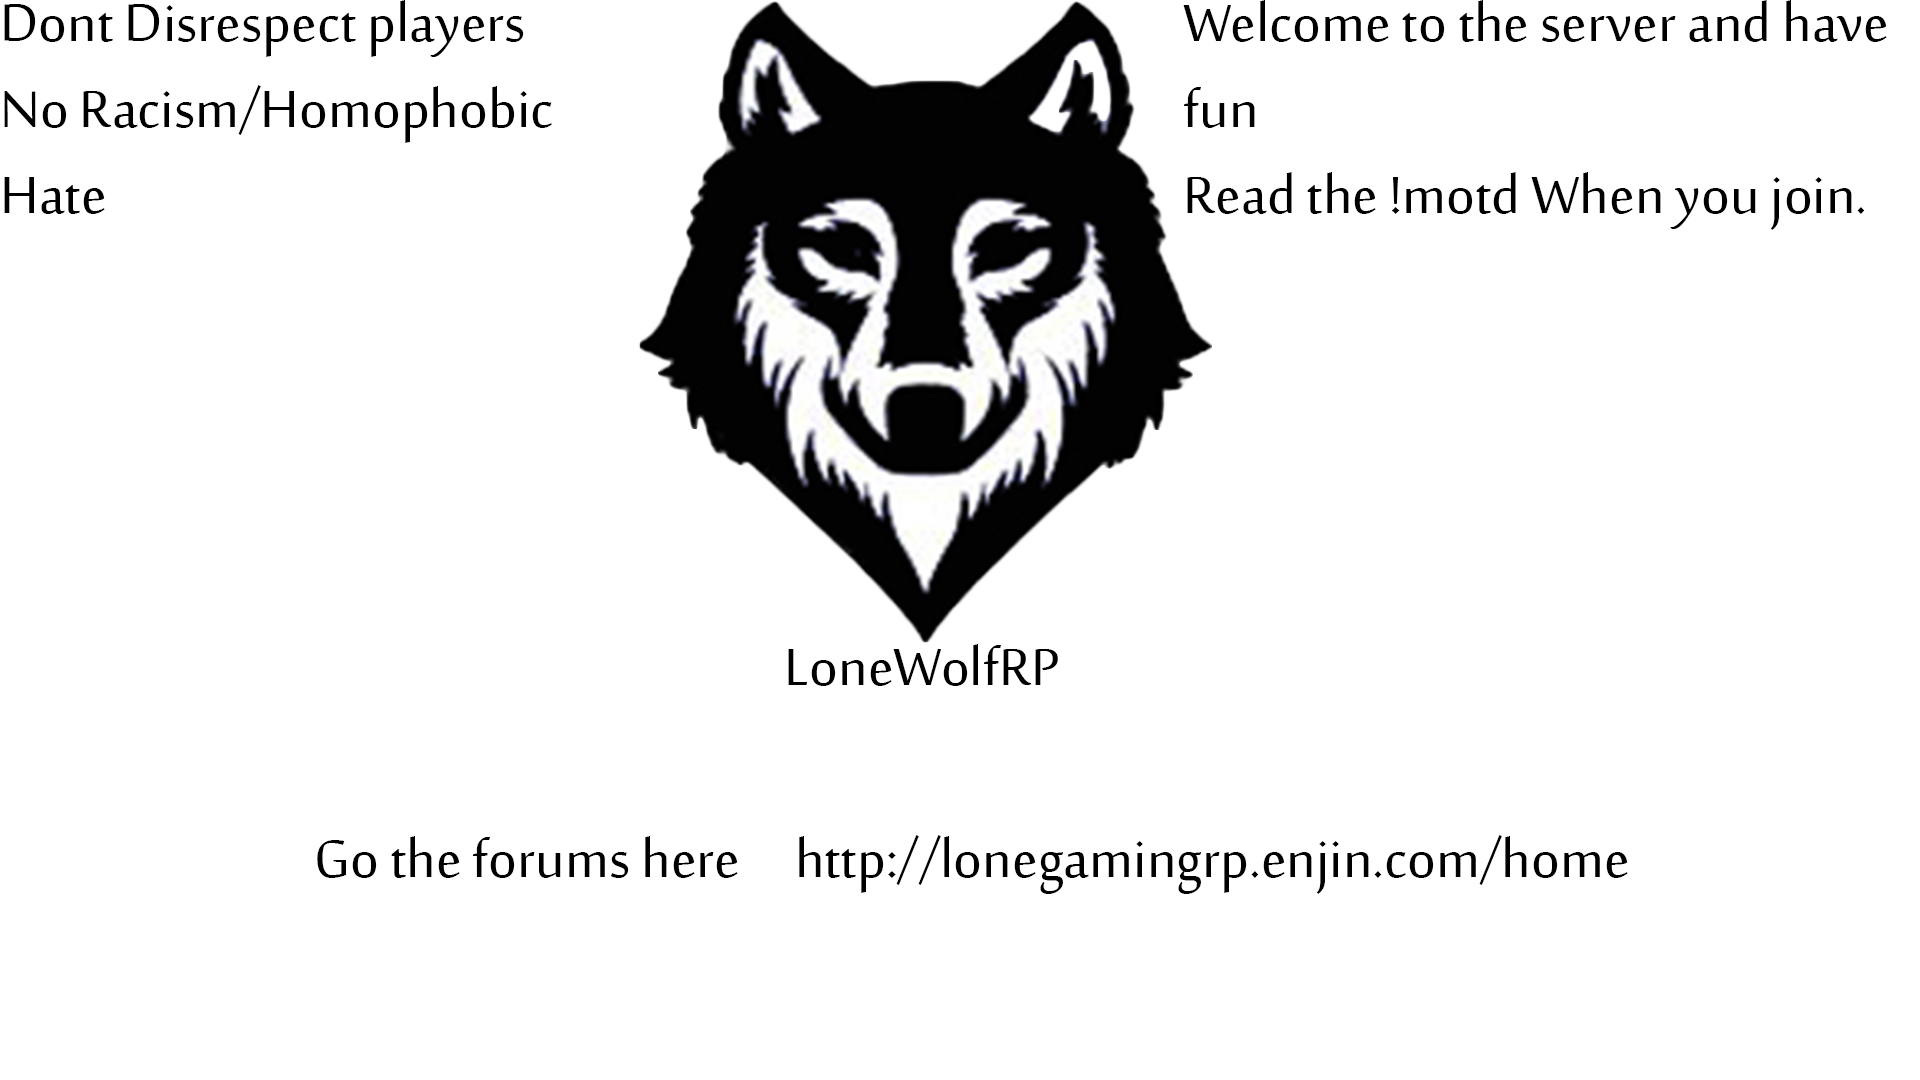 1920x1080-white-solid-color-background.jpg  by LoneWolf